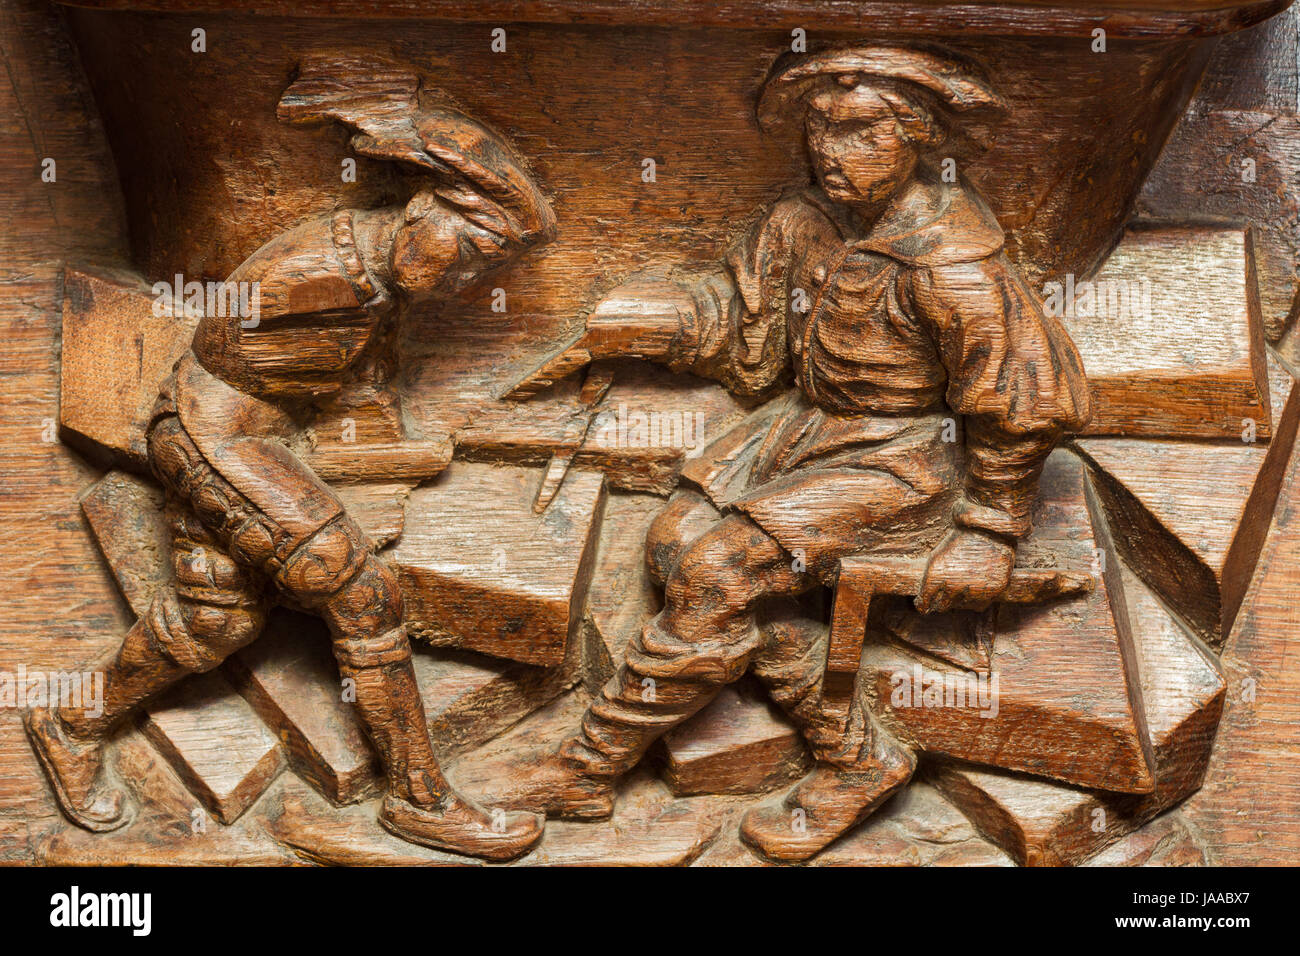 Stone cutter - Mason and apprentice - The Misericords of